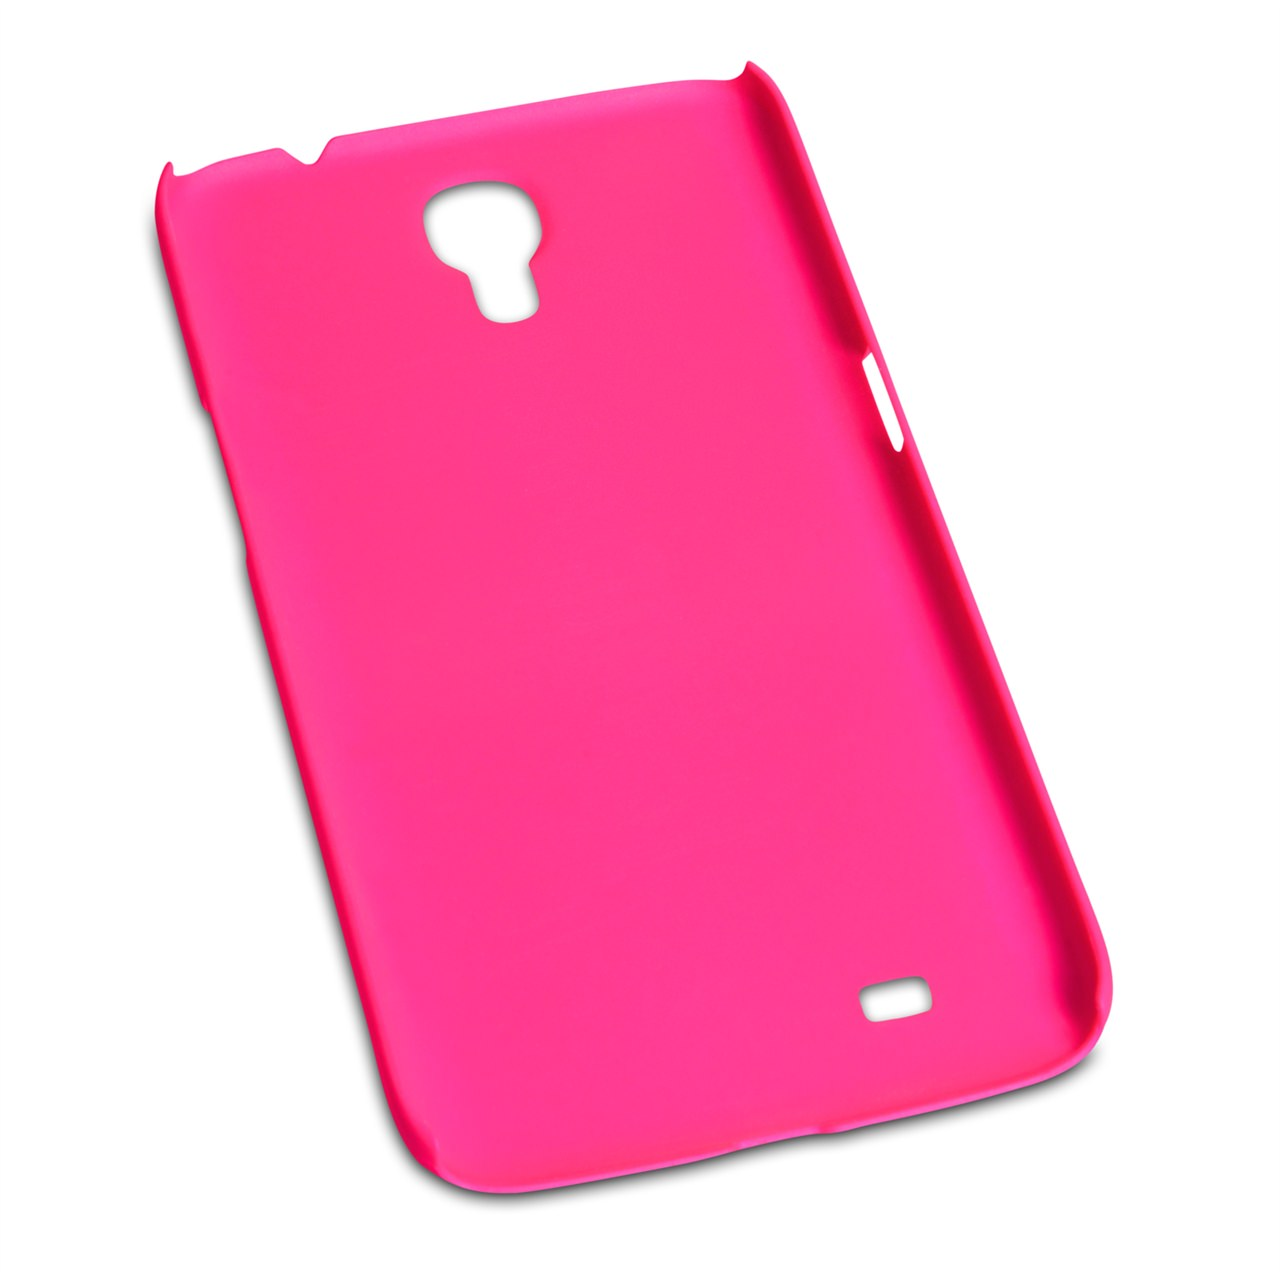 YouSave Samsung Galaxy Mega 6.3 Hard Hybrid Case - Hot Pink